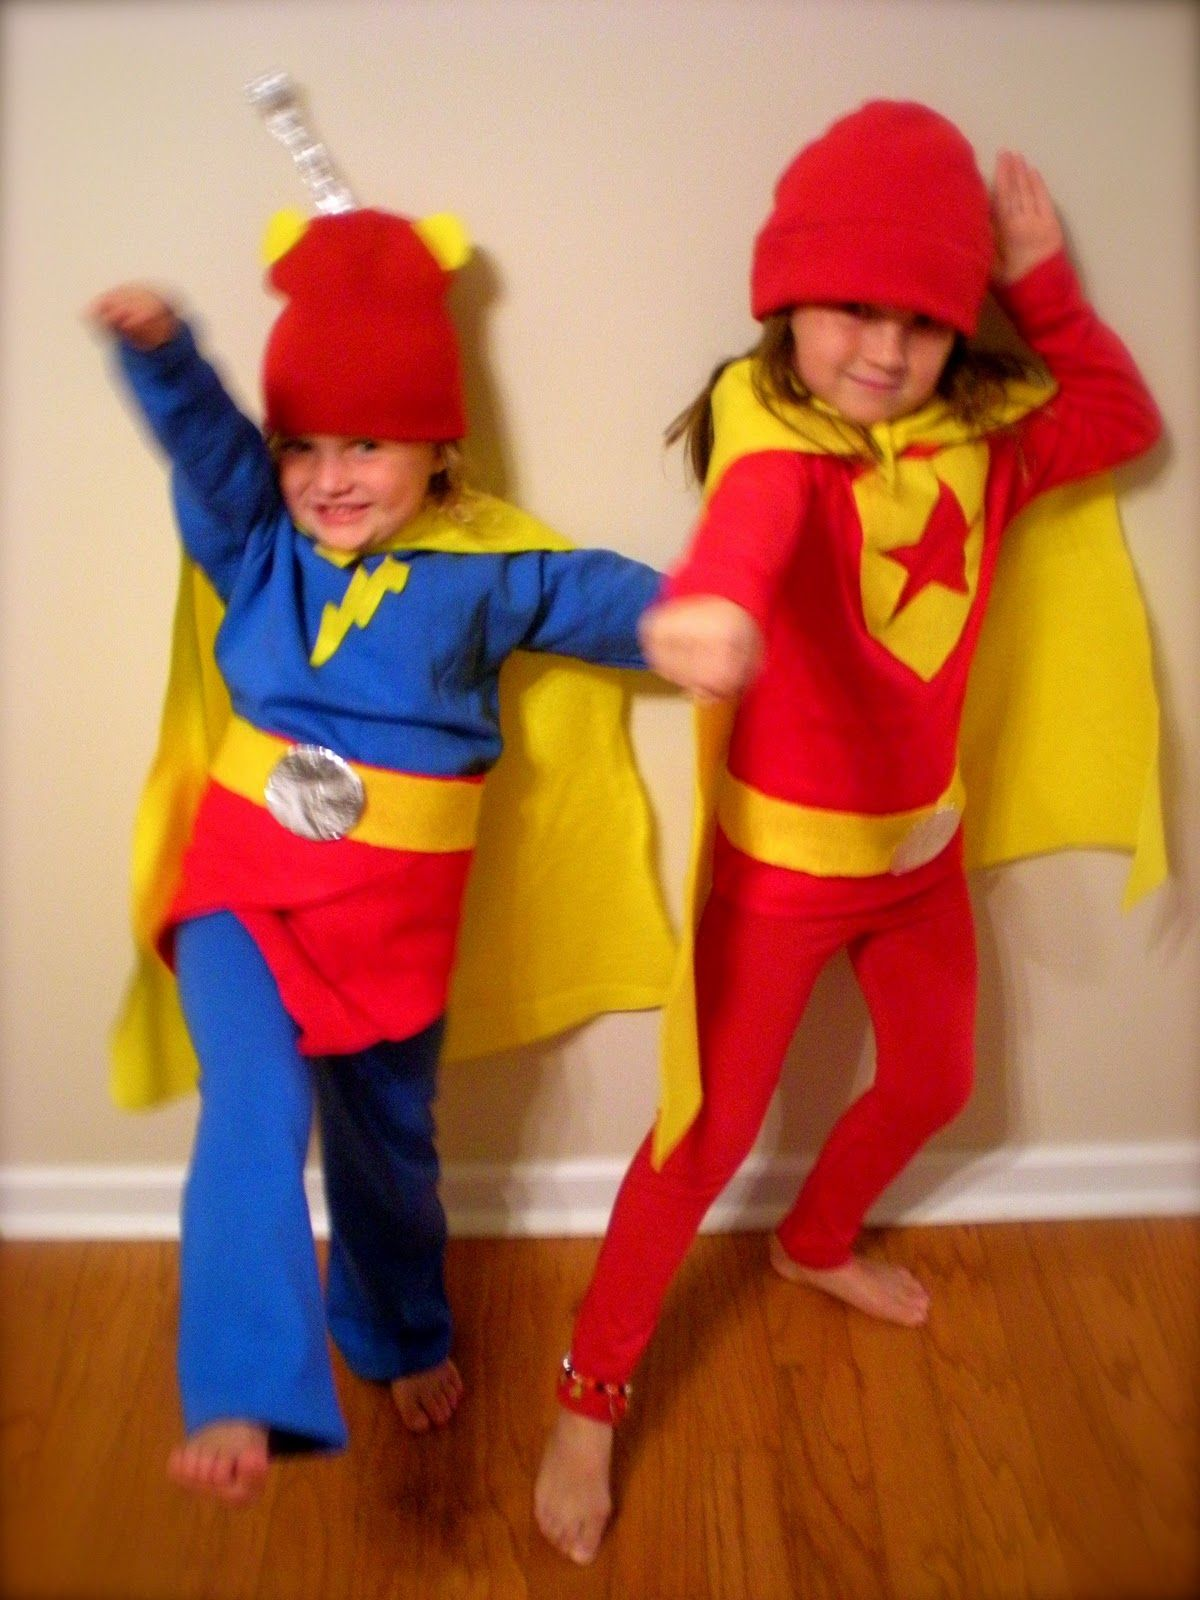 sippy cup central: word girl halloween costume | children